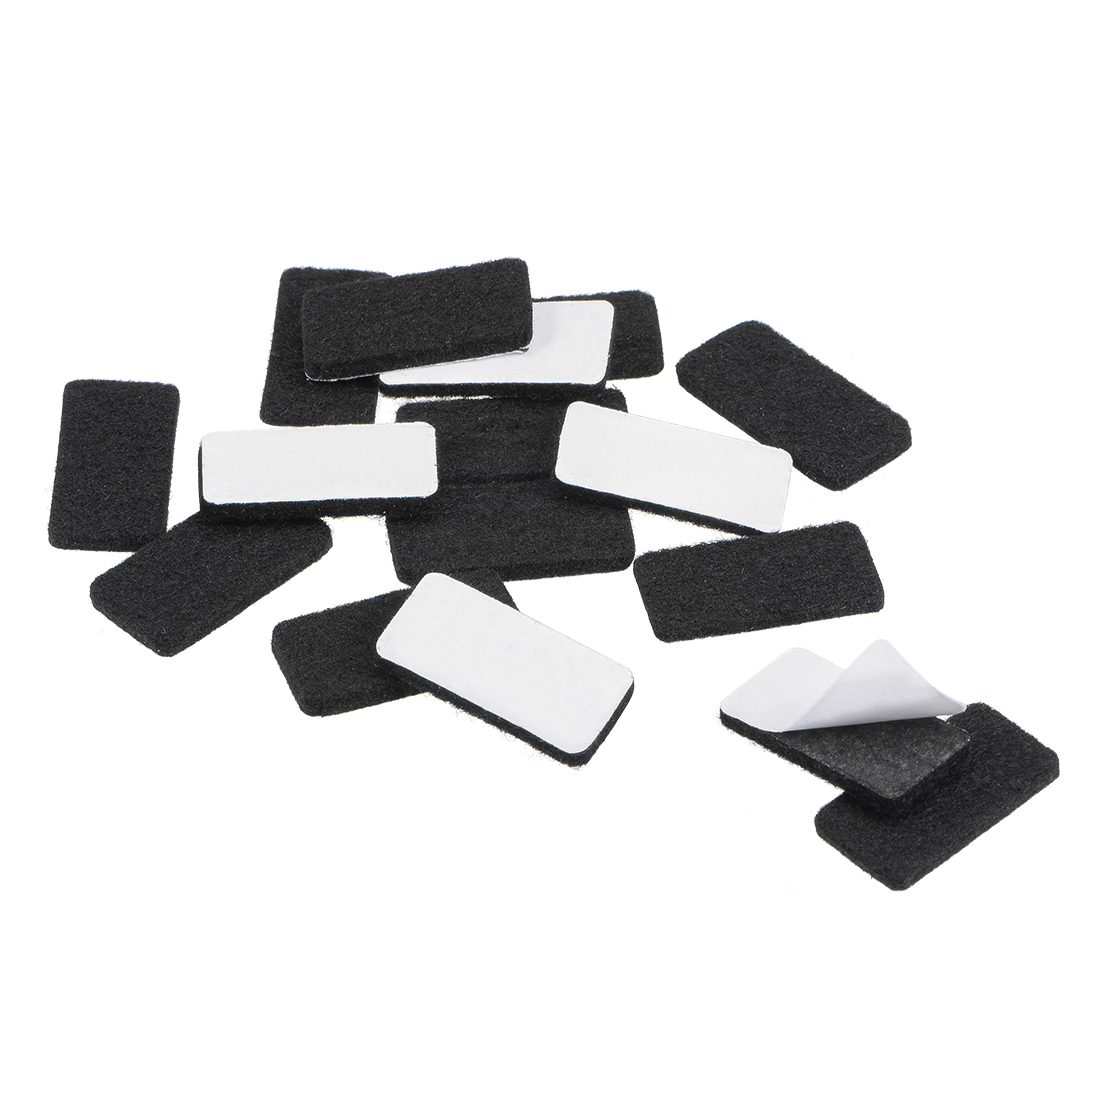 Uxcell Furniture Pads 30mm X 15mm Adhesive Felt Pads 3mm Thick Black 48Pcs